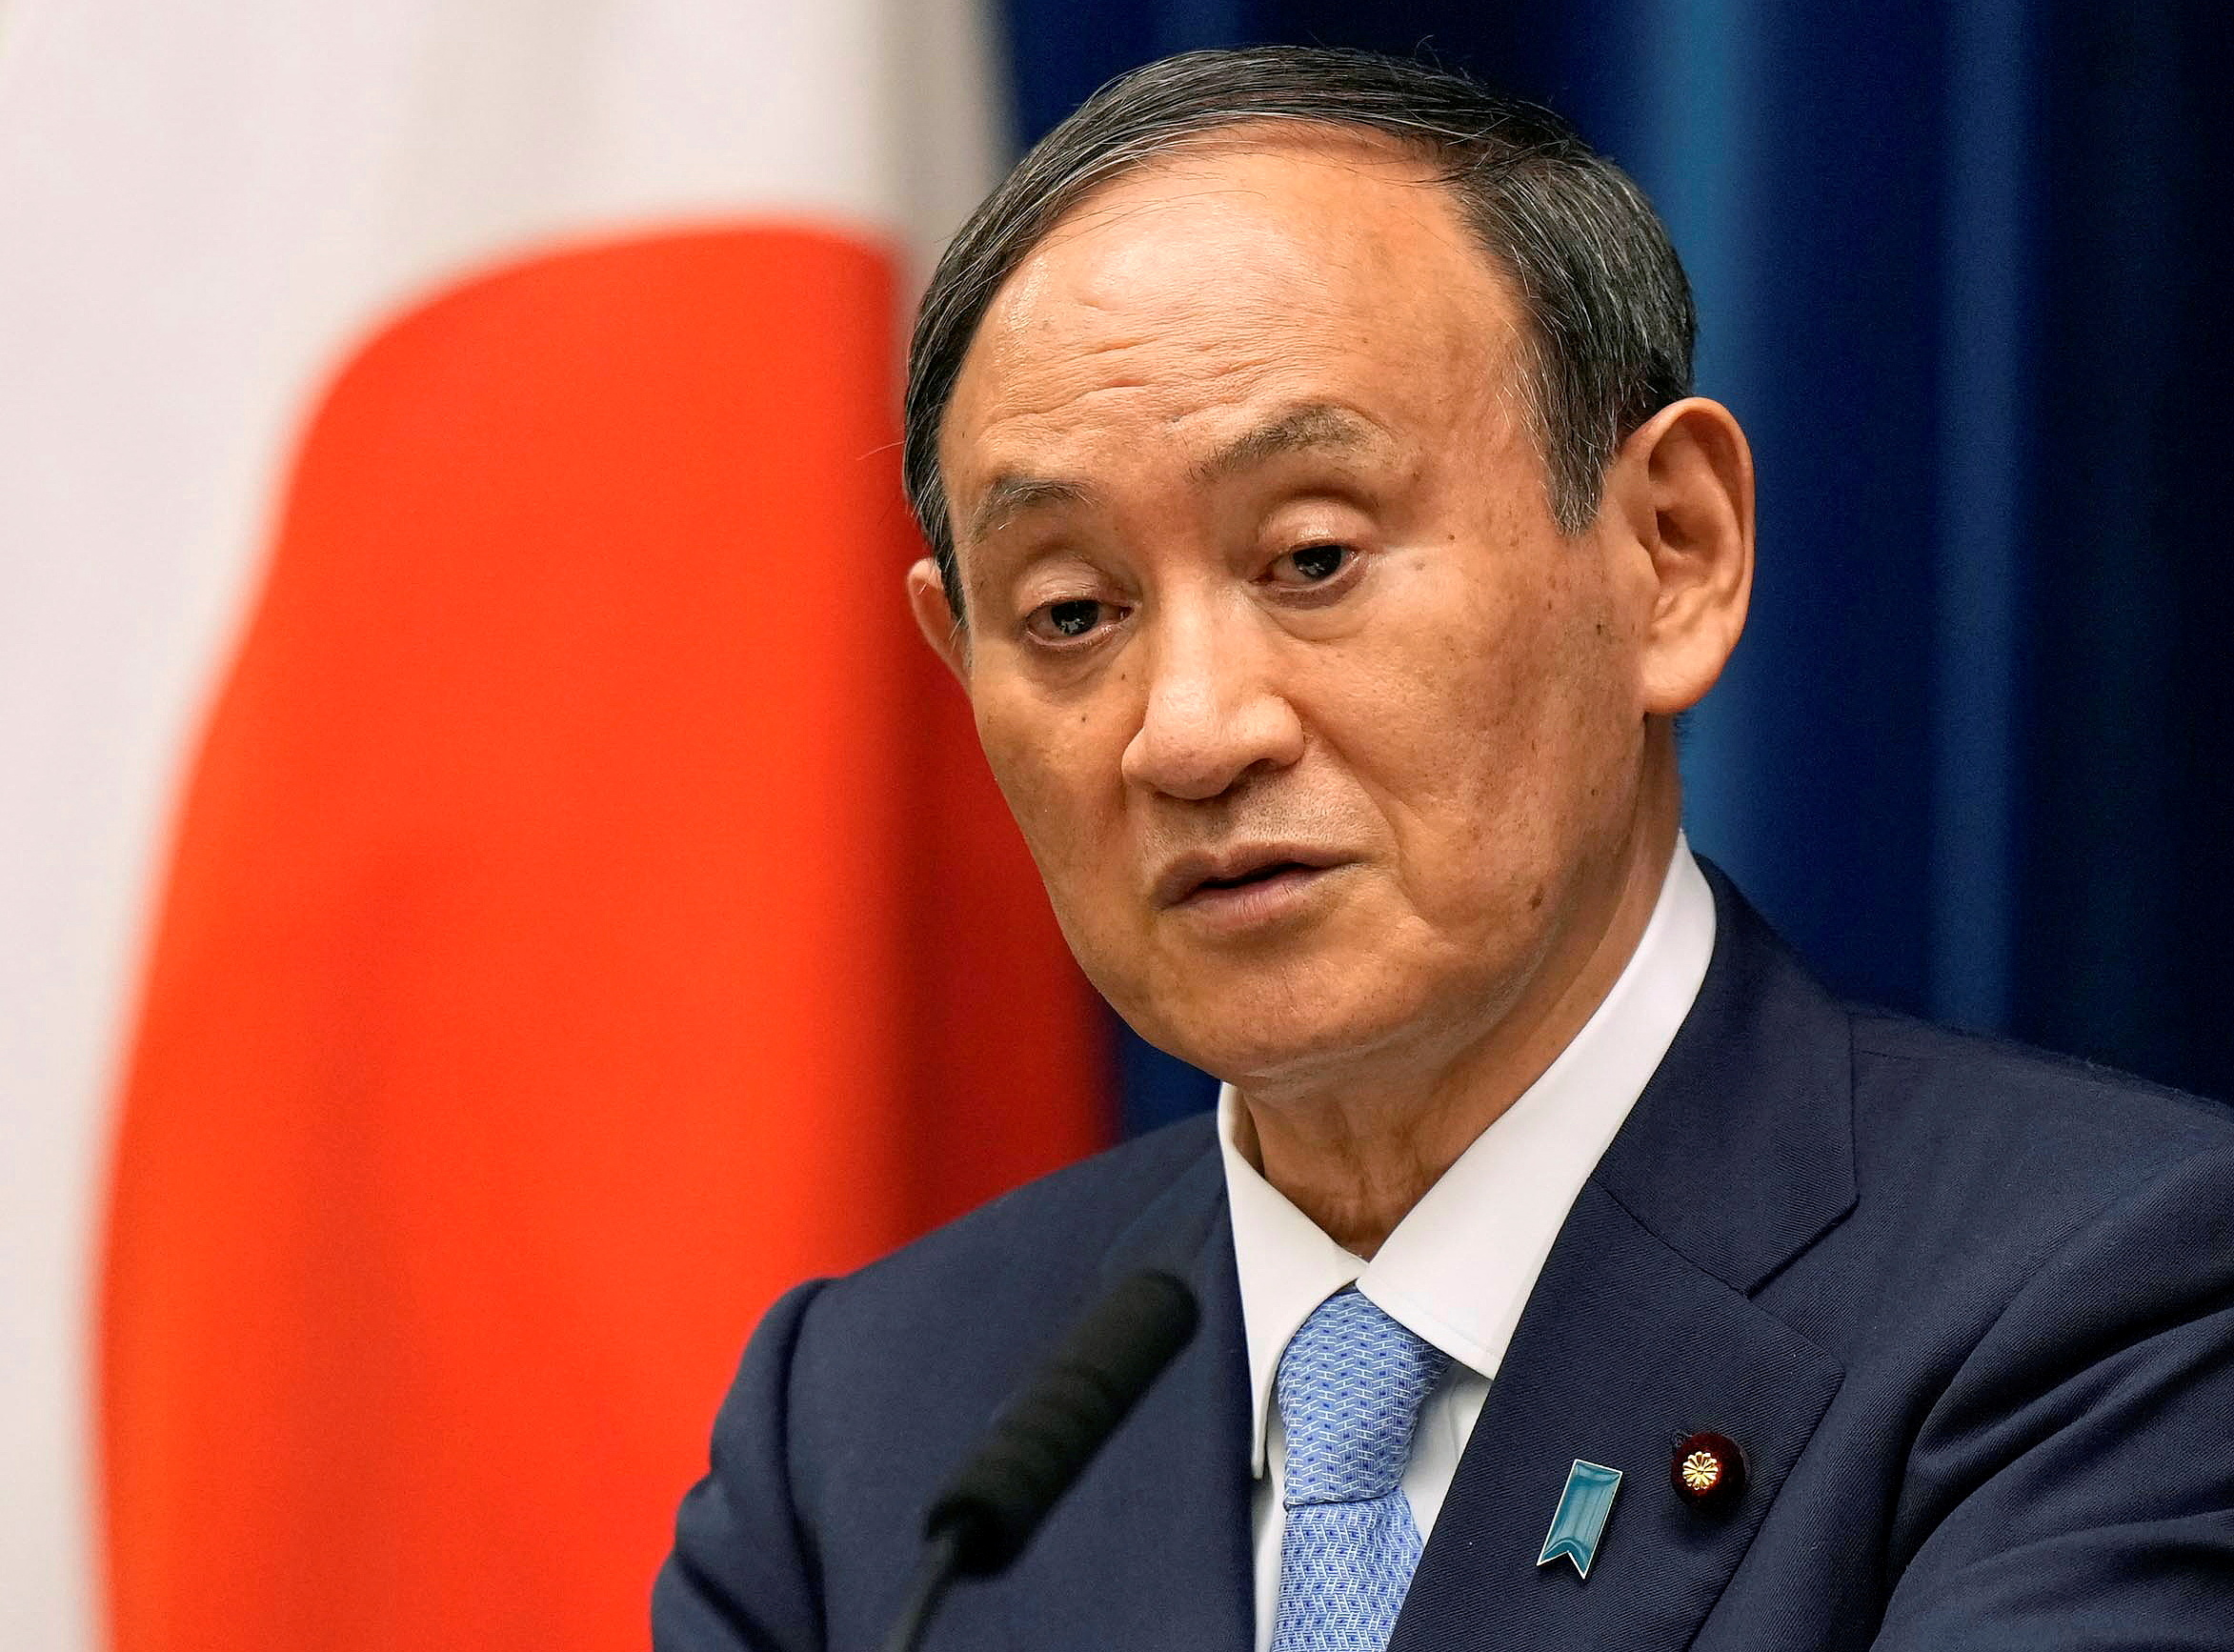 Japanese Prime Minister Yoshihide Suga speaks during a news conference announcing to extend a state of emergency on COVID-19 pandemic at prime minister's official residence in Tokyo, Japan, August 17, 2021. Kimimasa Mayama/Pool via REUTERS//File Photo